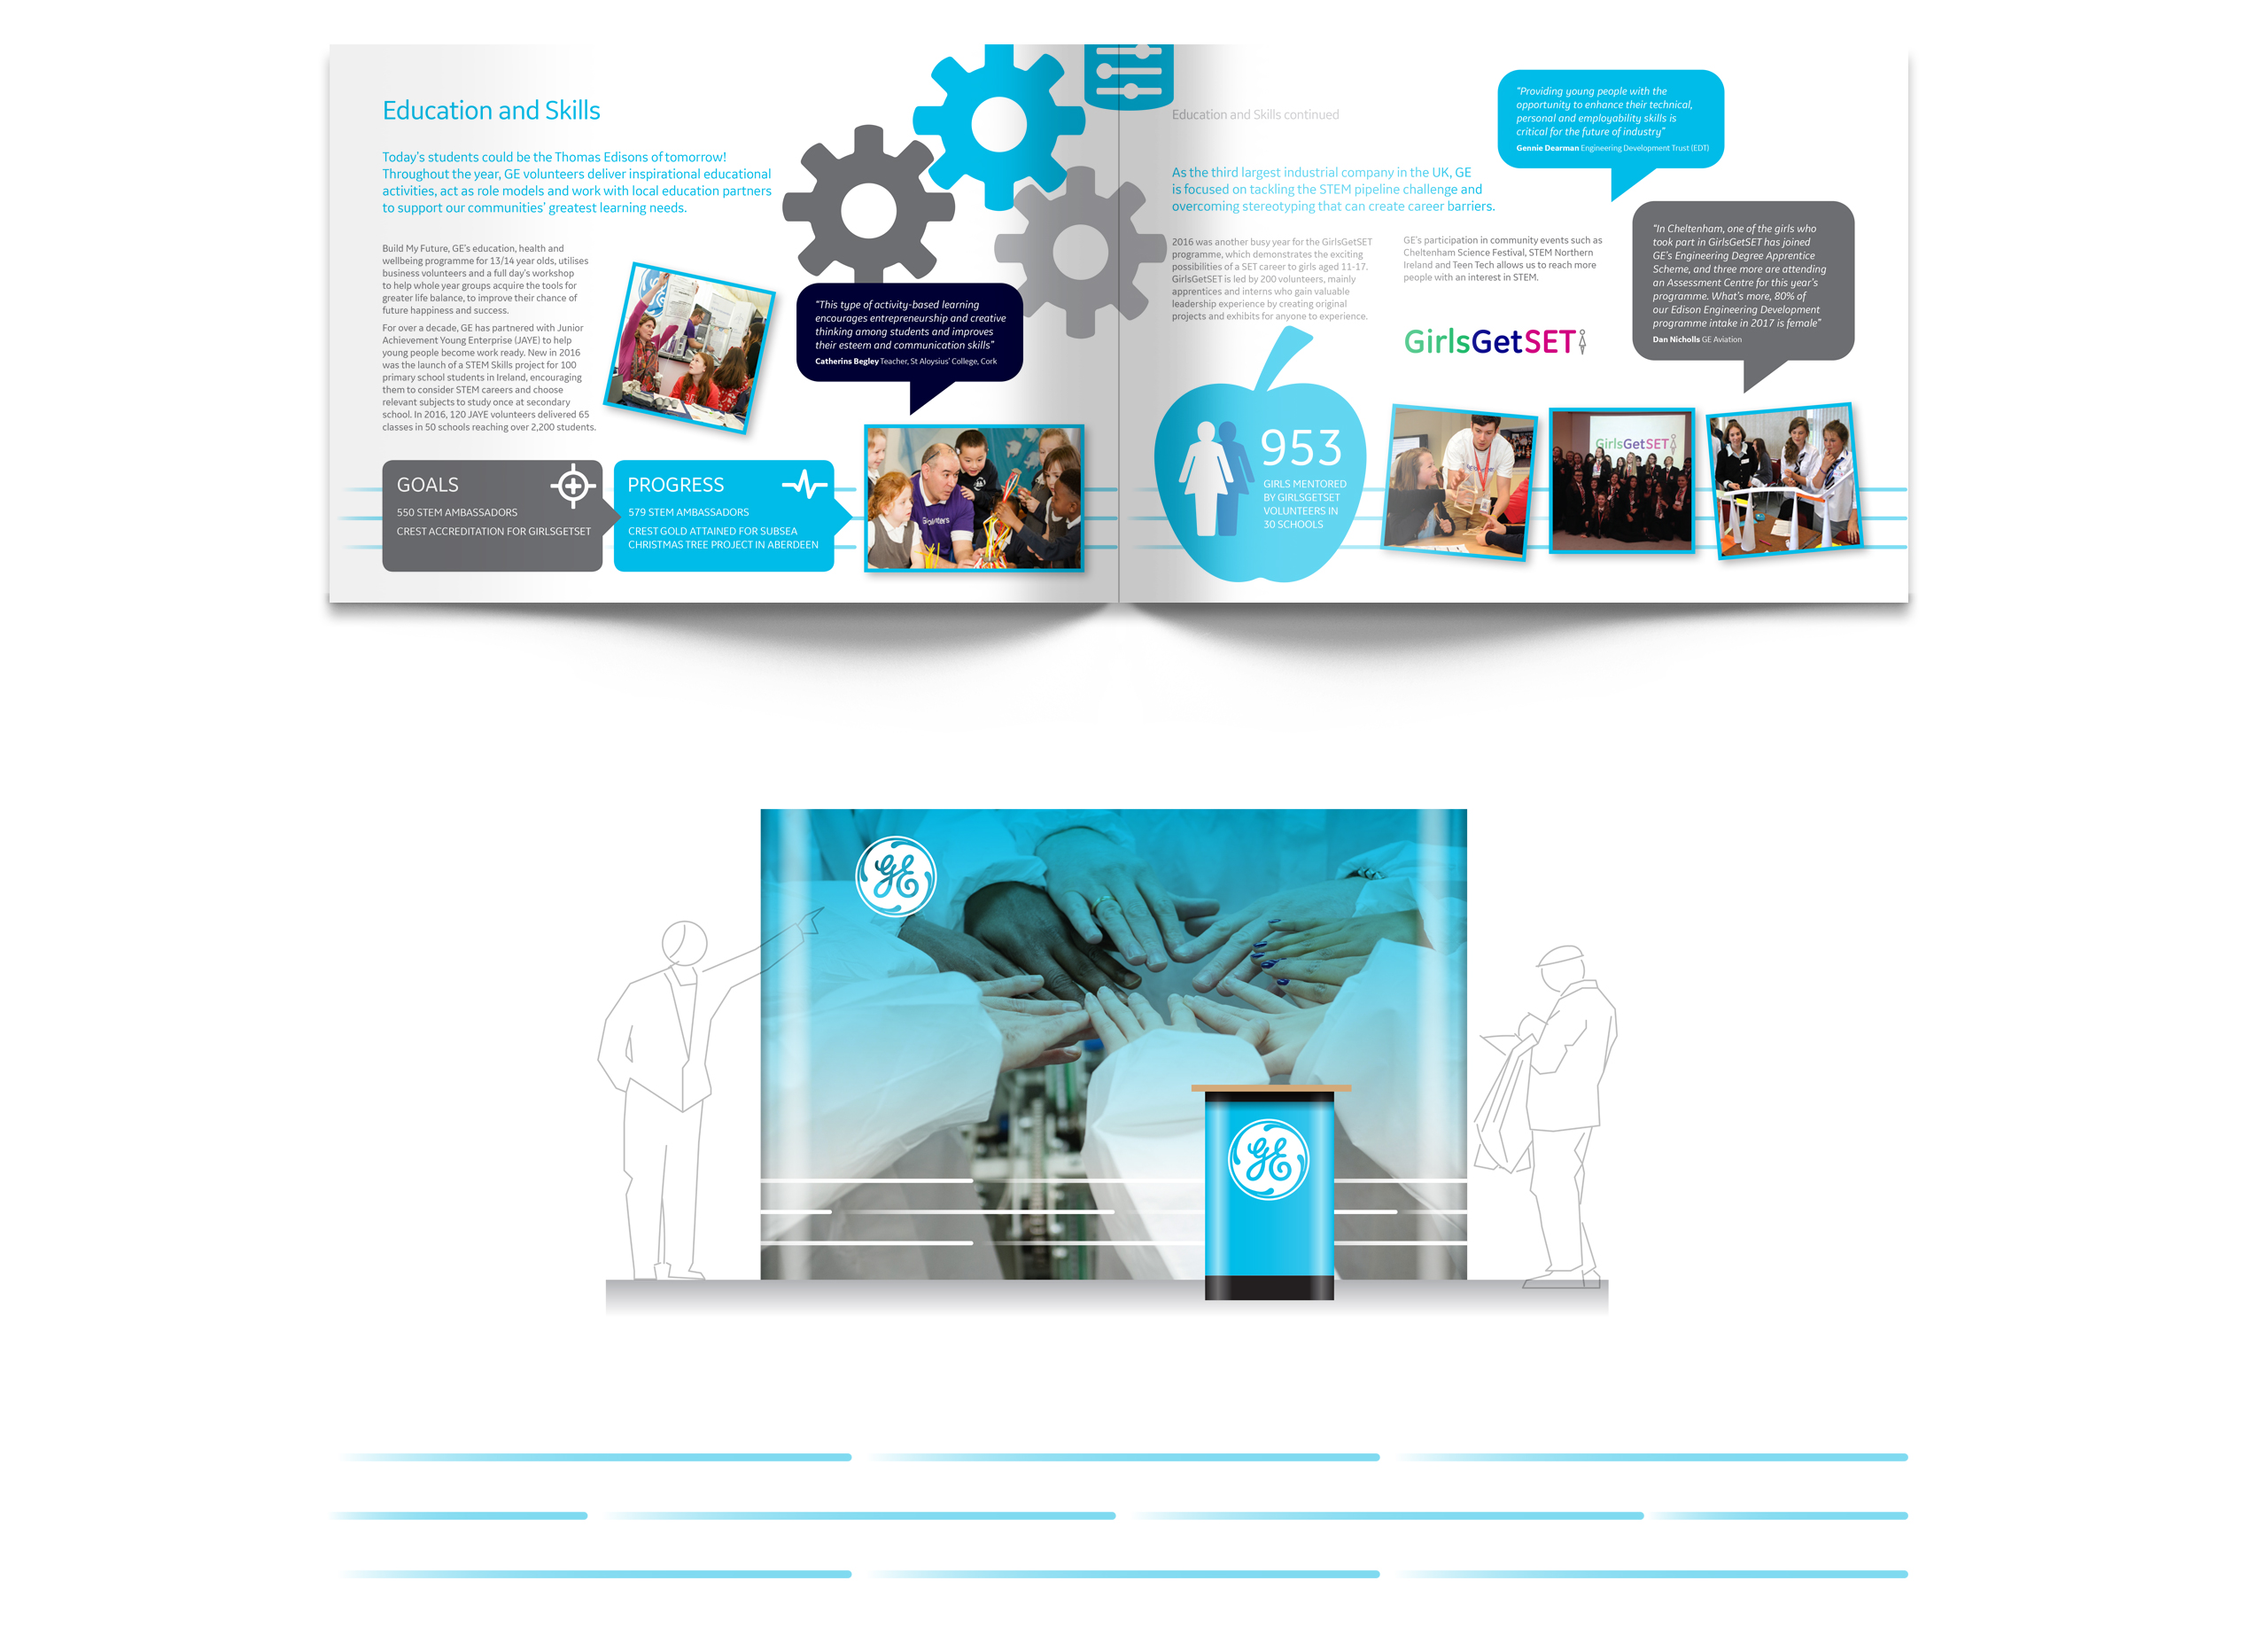 ge community investment report double page spread and pop up display visual